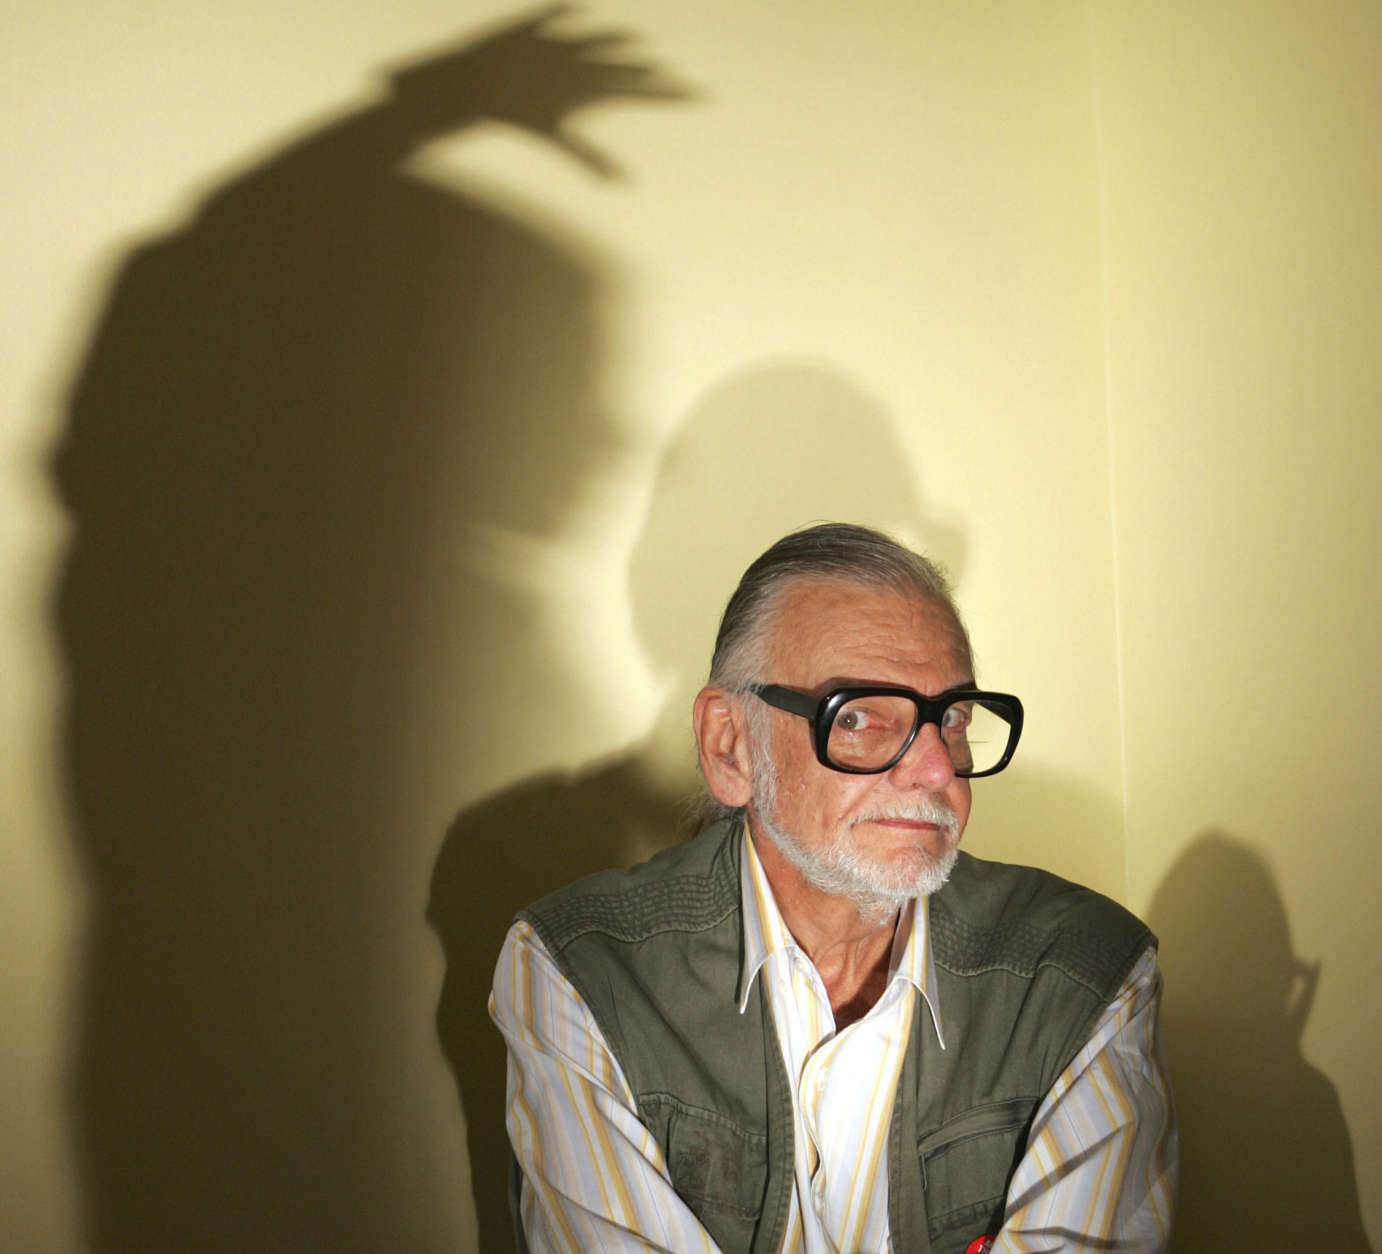 """George Romero, whose classic ``Night of the Living Dead'' and other horror films turned zombie movies into social commentaries and who saw his flesh-devouring undead spawn countless imitators, remakes and homages, has died. He was 77. Romero, director of """"Night of the Living Dead,"""" """"Dawn of the Dead,"""" Day of the Dead,"""" and his latest film """"Land of the Dead,"""" poses with shadows June 16, 2005, in Beverly Hills, Calif. (AP Photo/Chris Carlson)"""